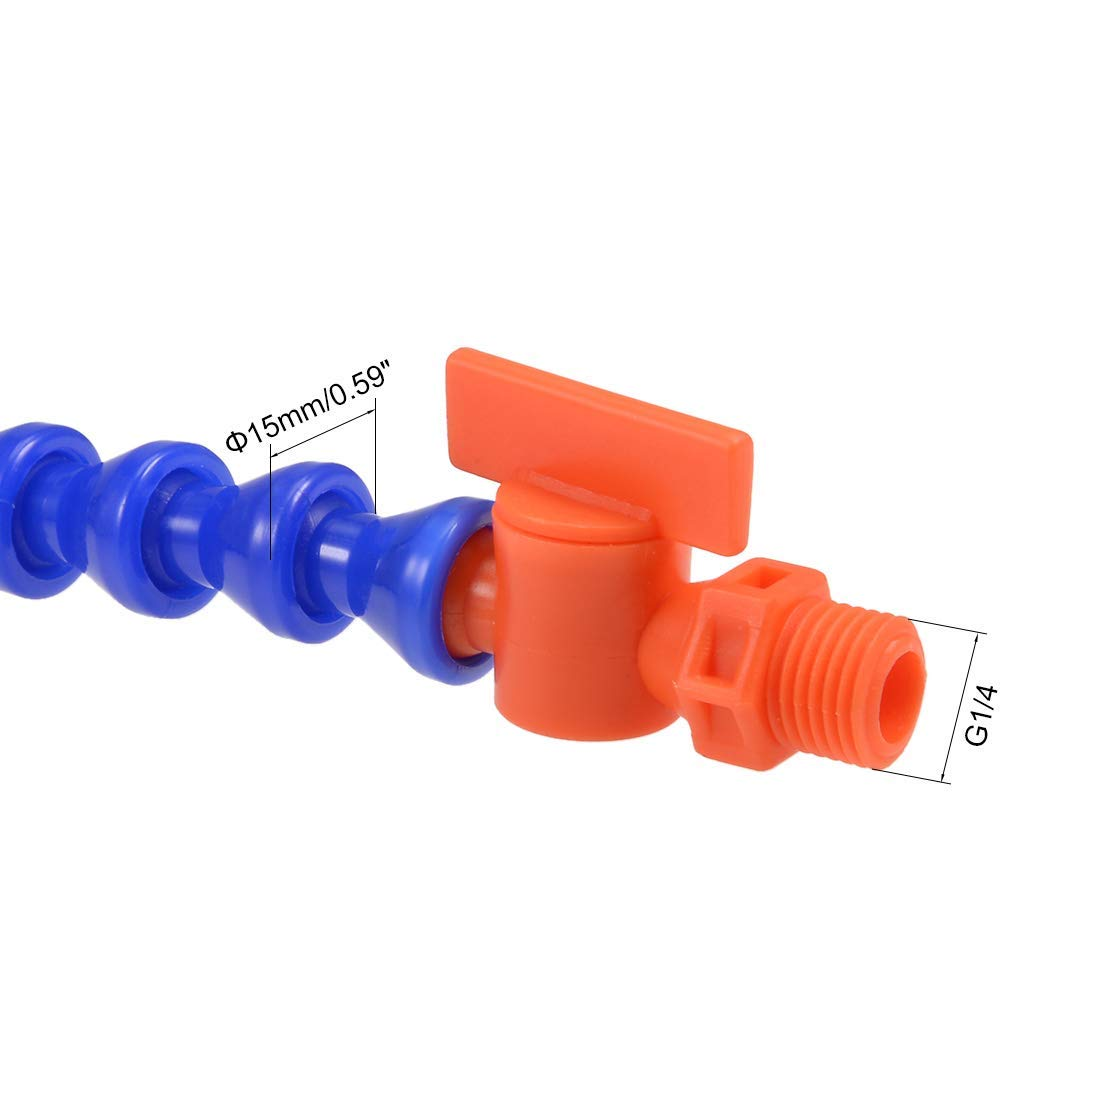 15.74 inches in Length G1 4 Thread Flat Nozzle Flexible Water Oil coolant Hose with Valve 400 mm Flexible coolant Tube DealMux